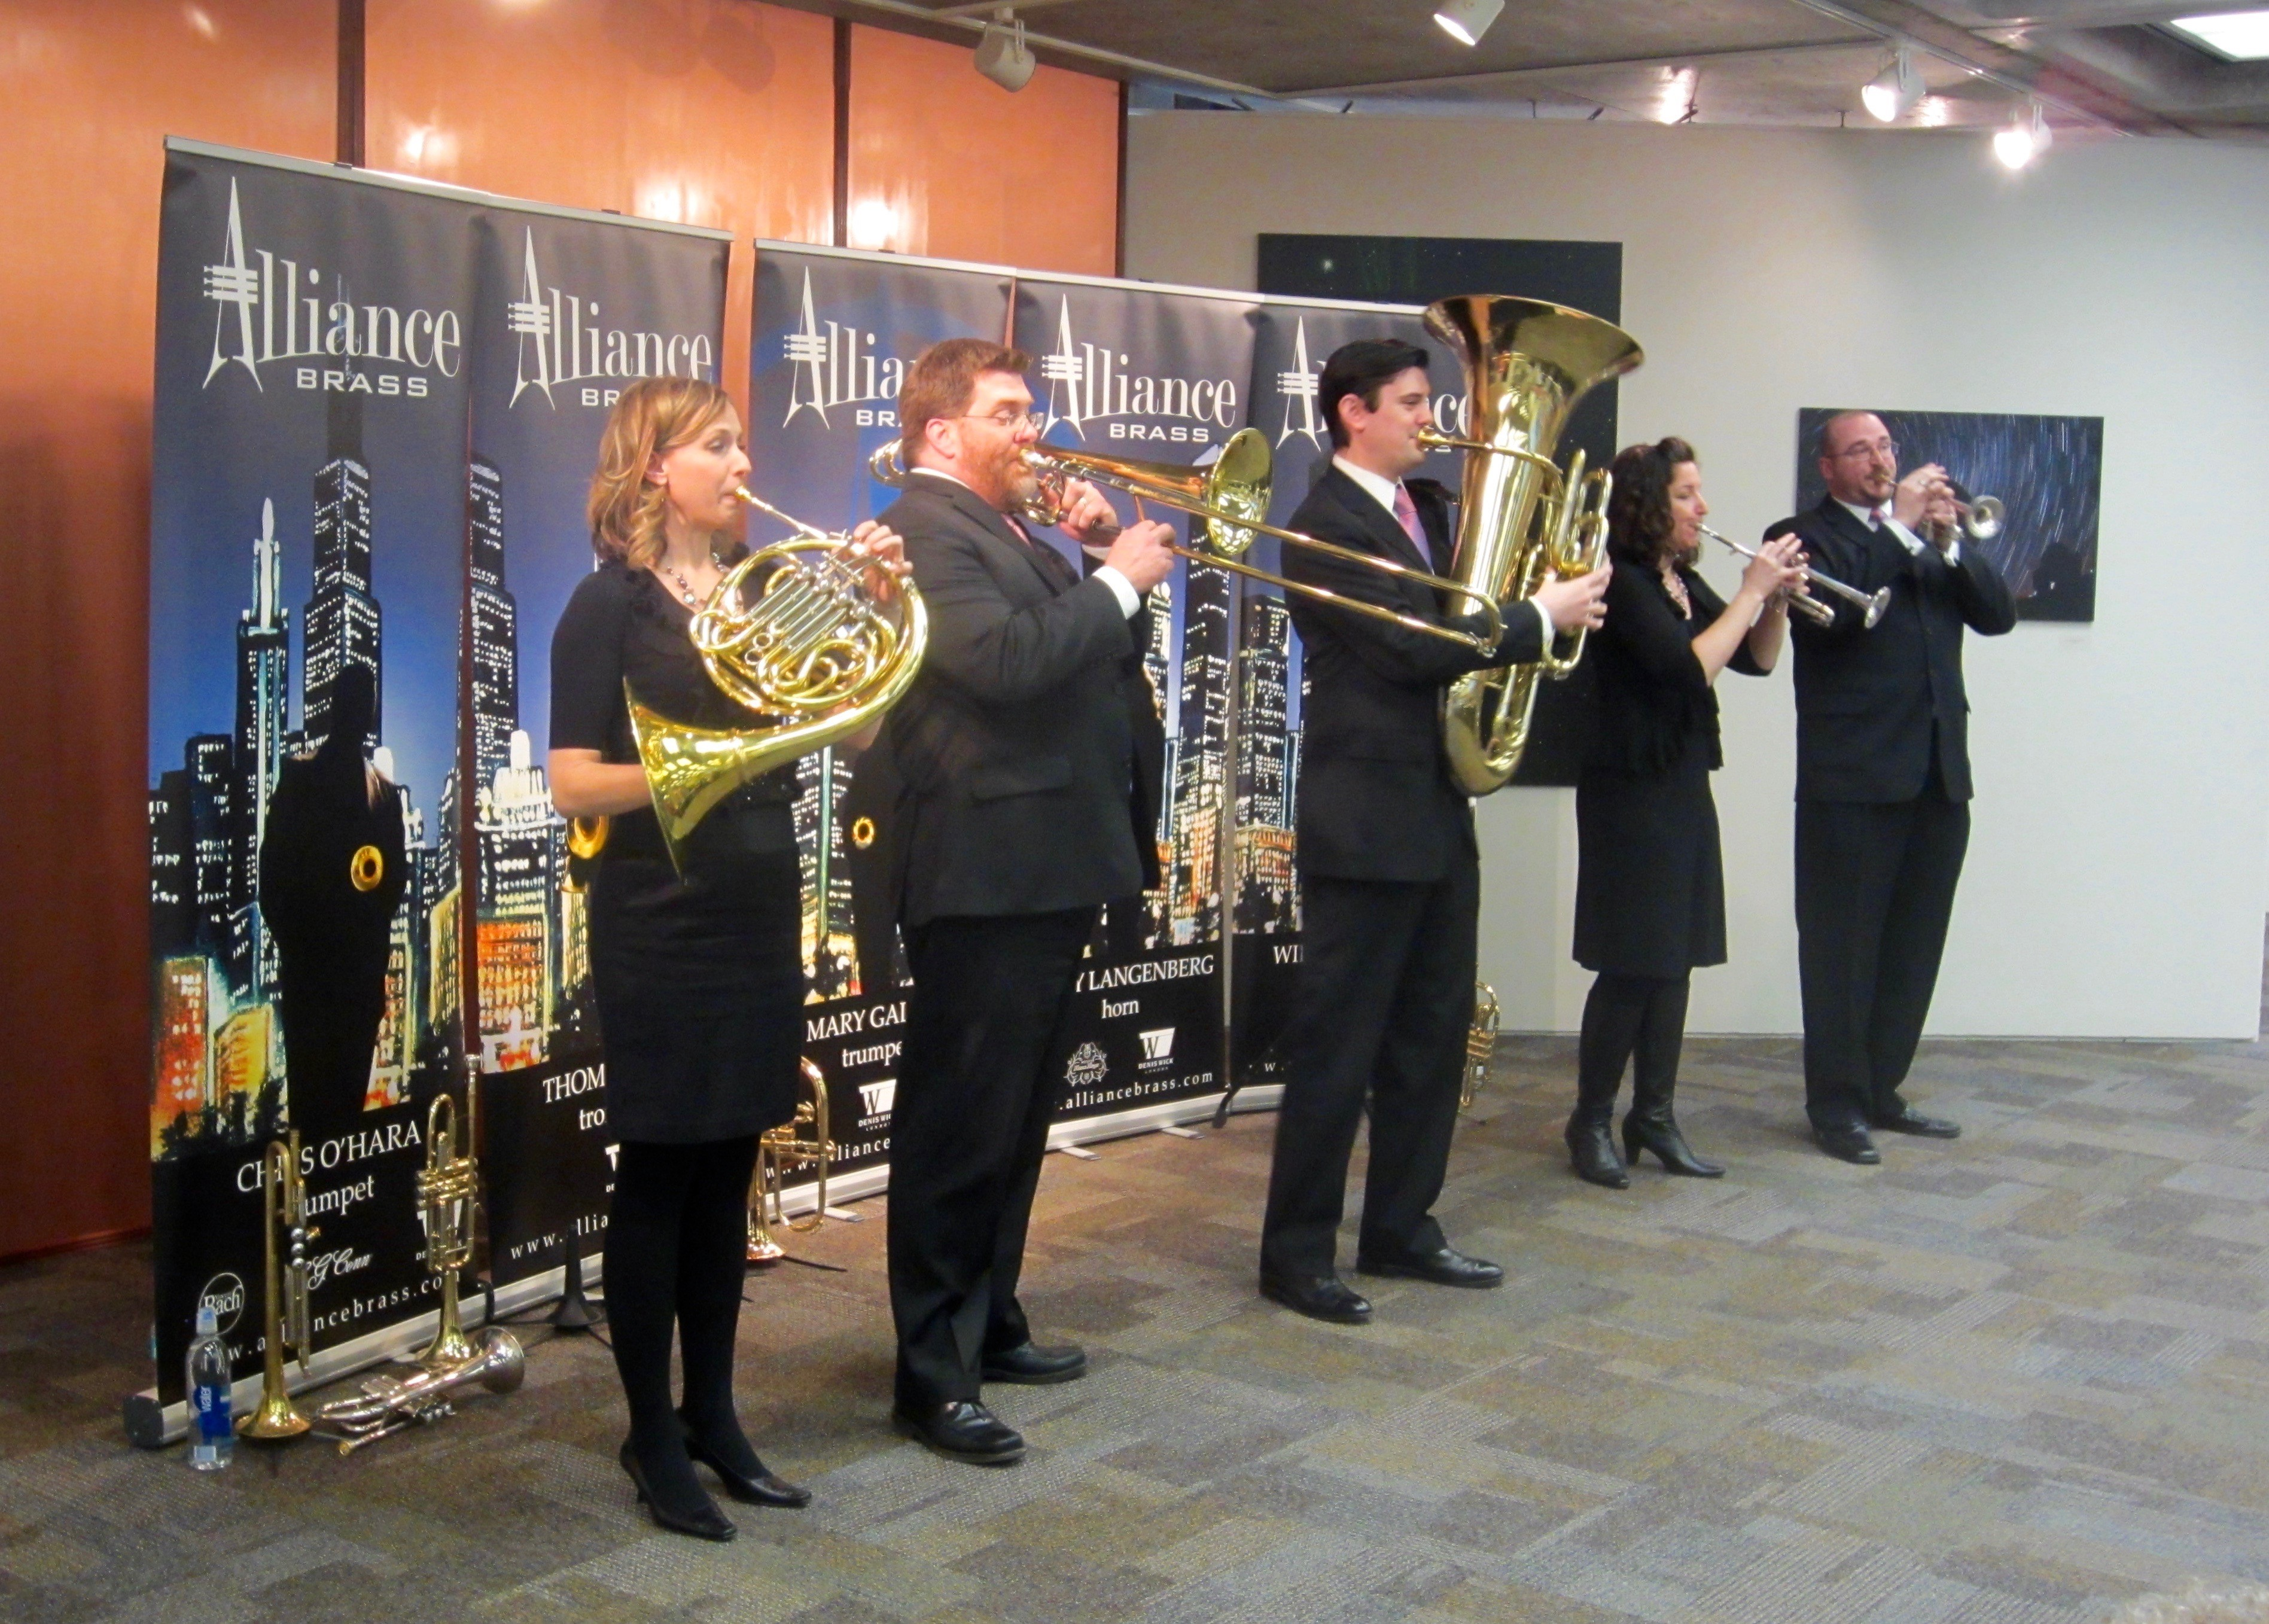 The Alliance Brass performed at Fermilab as part of the Gallery Chamber Series on Feb. 28 at 2:30 p.m. in the Fermilab Art Gallery. Photo: Georgia Schwender, OC